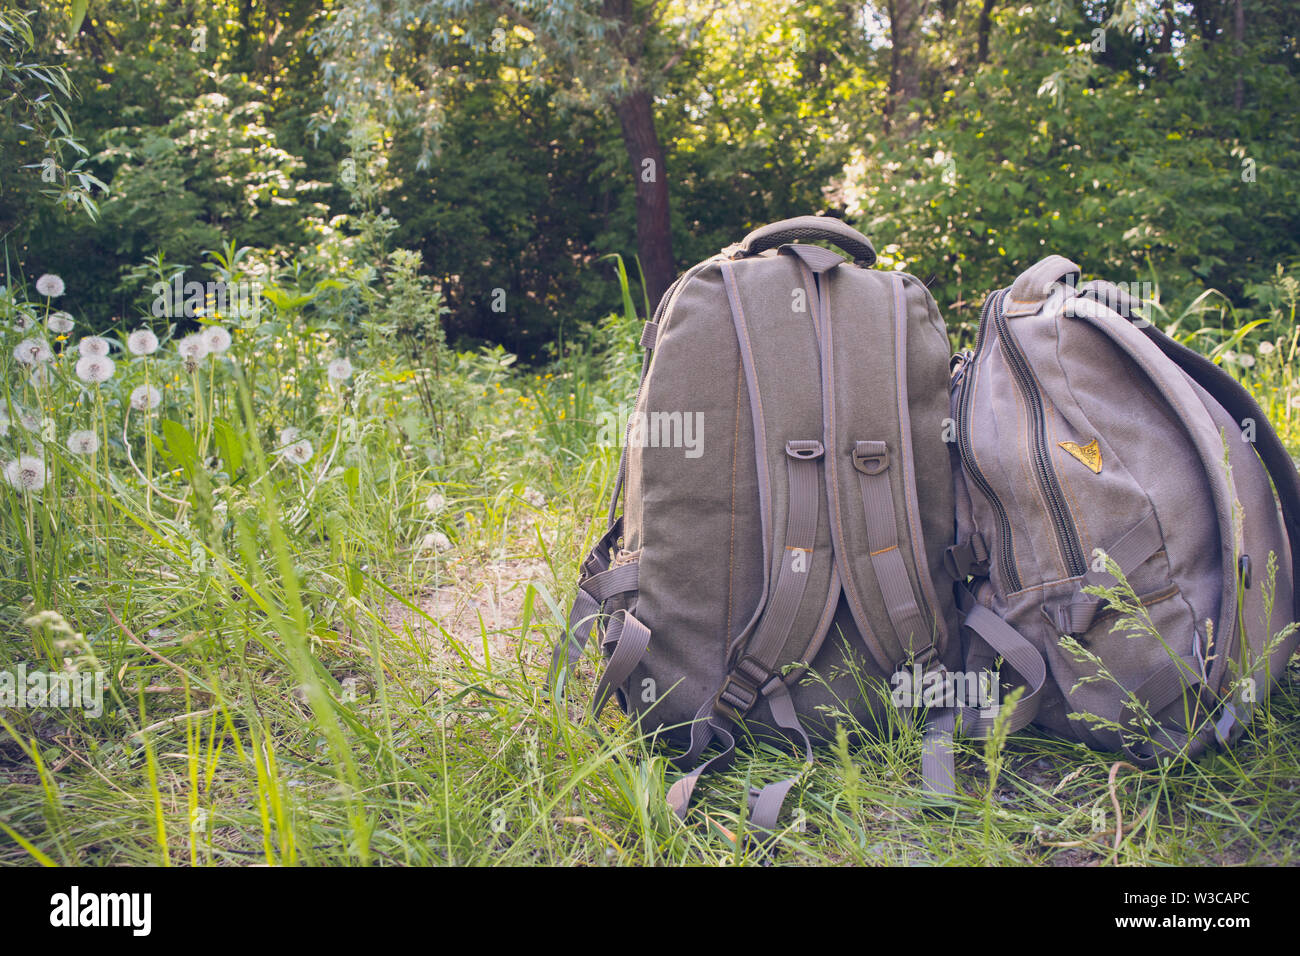 Two touristic backpacks on the green grass in the forest. Concept of travel and active lifestyle - Stock Image